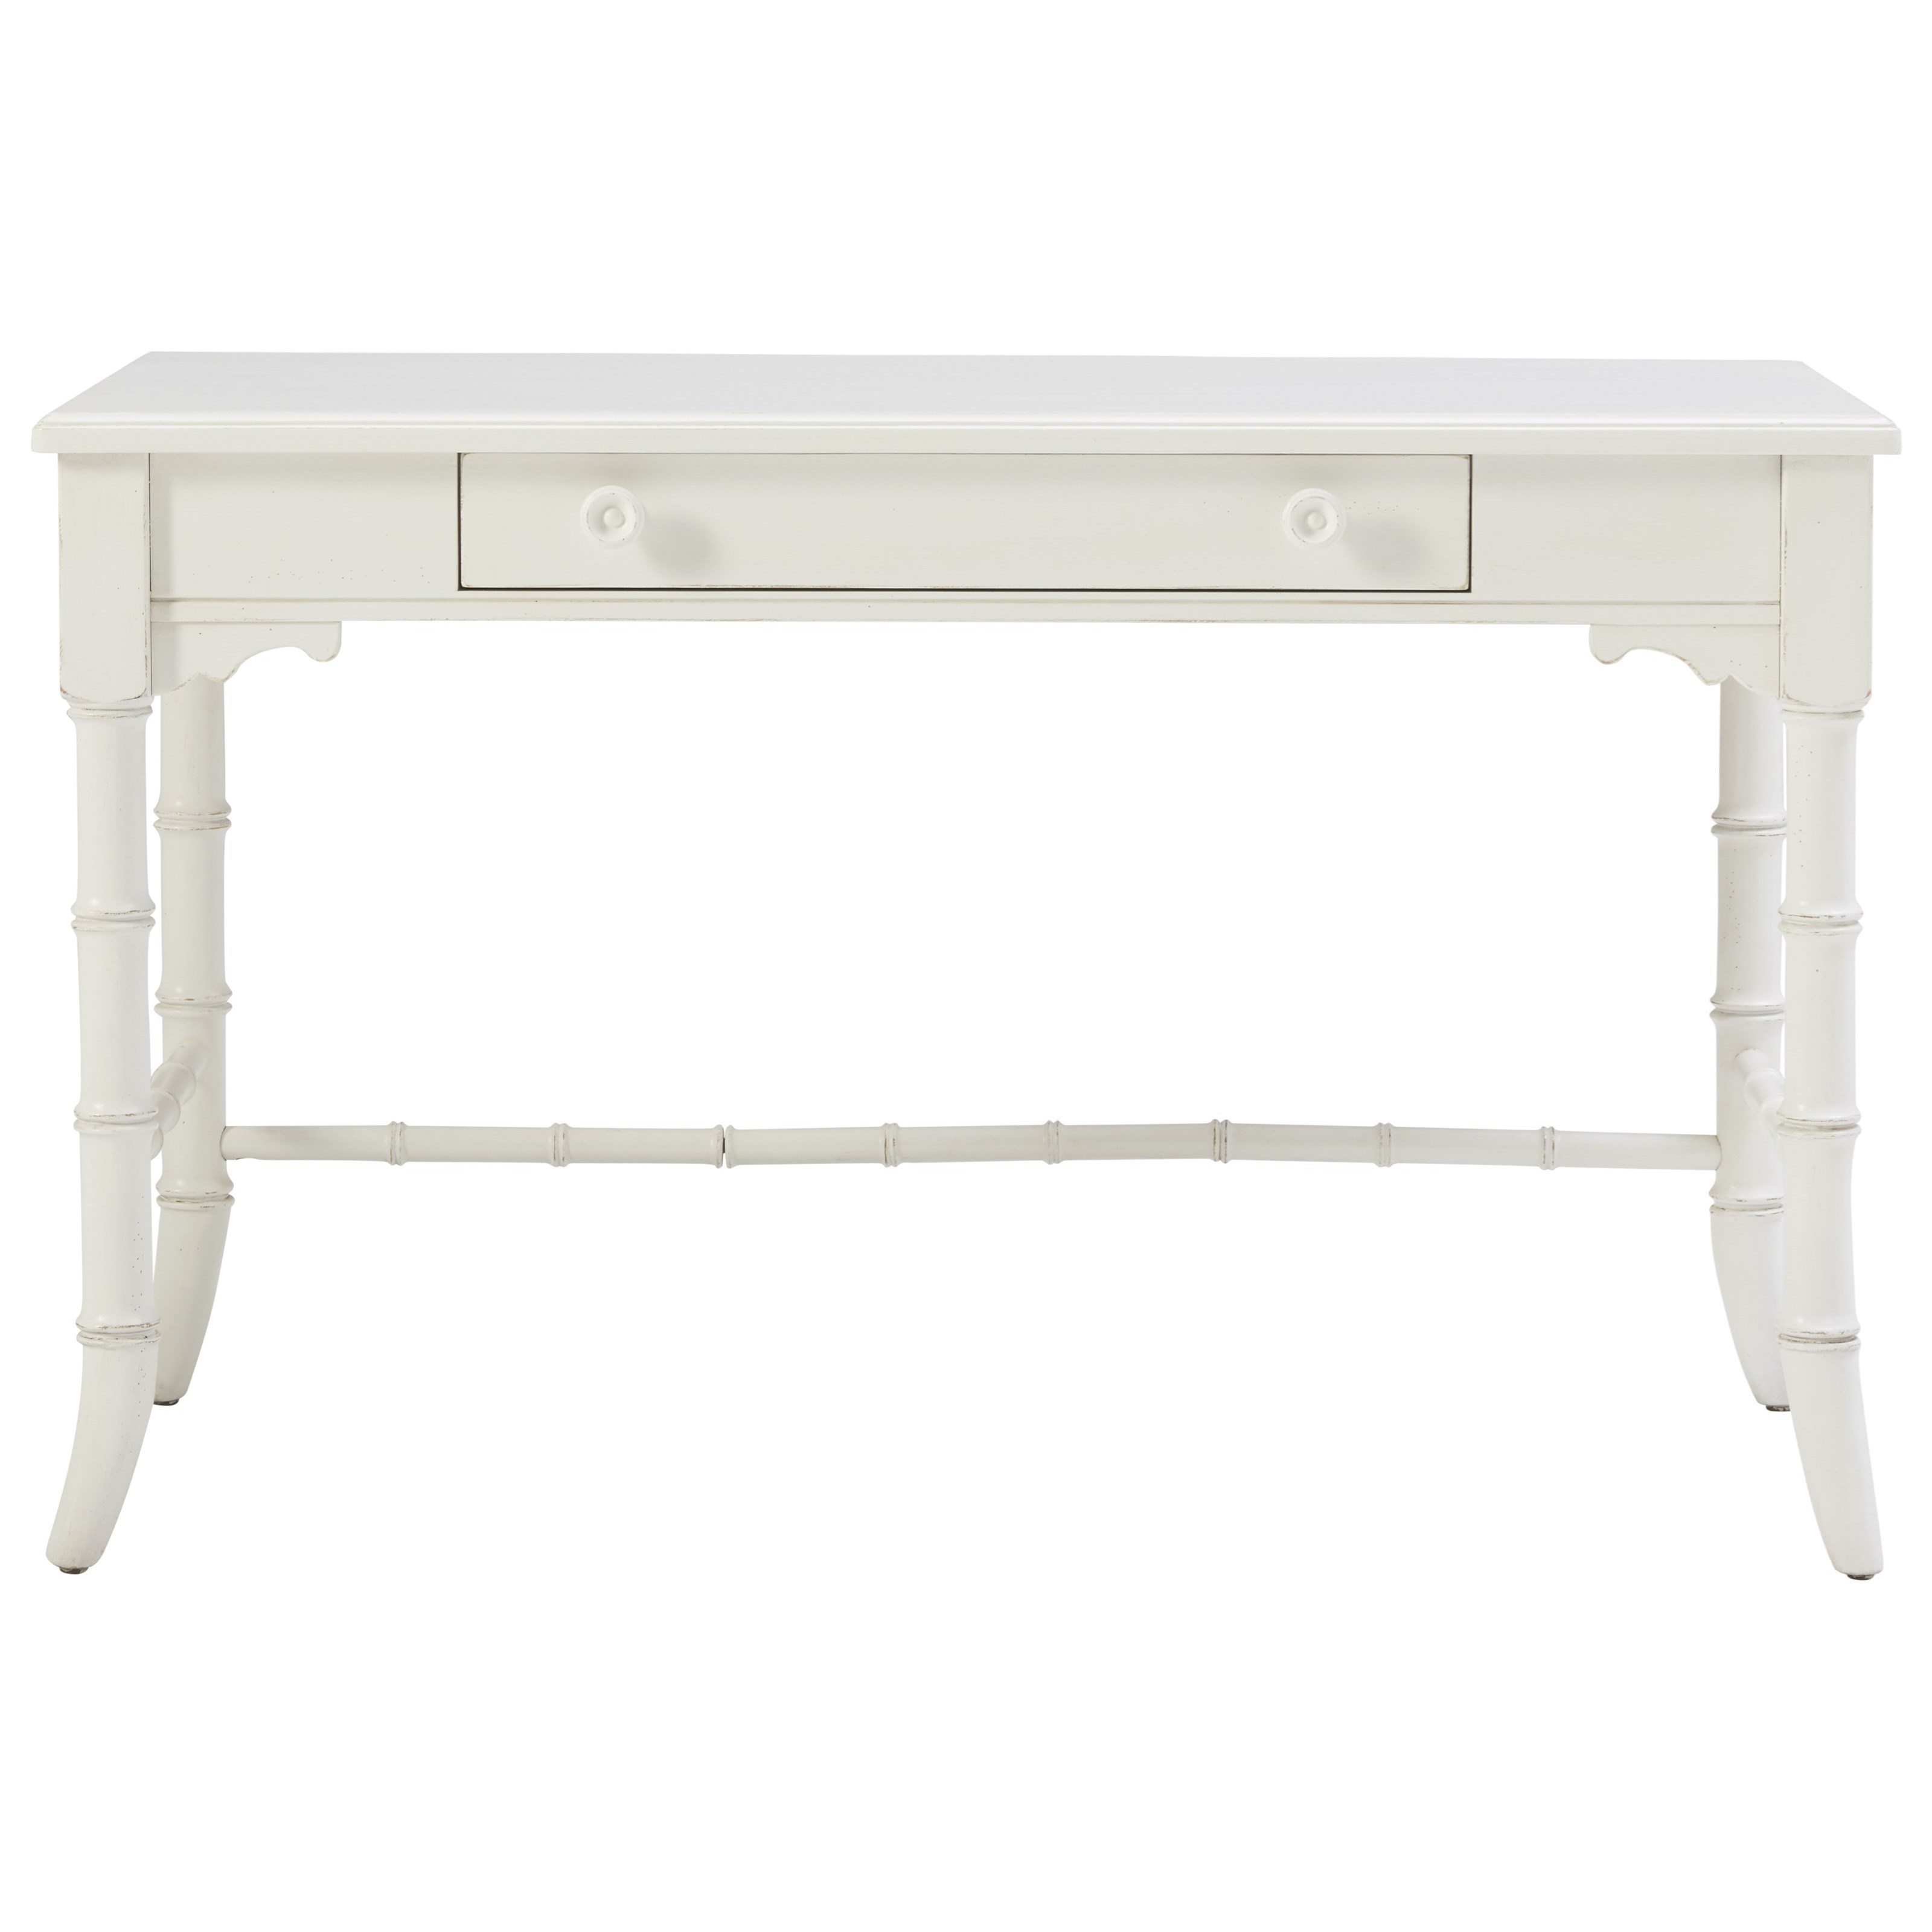 Paula Deen by Universal Bungalow Writing Desk - Item Number: 795A813